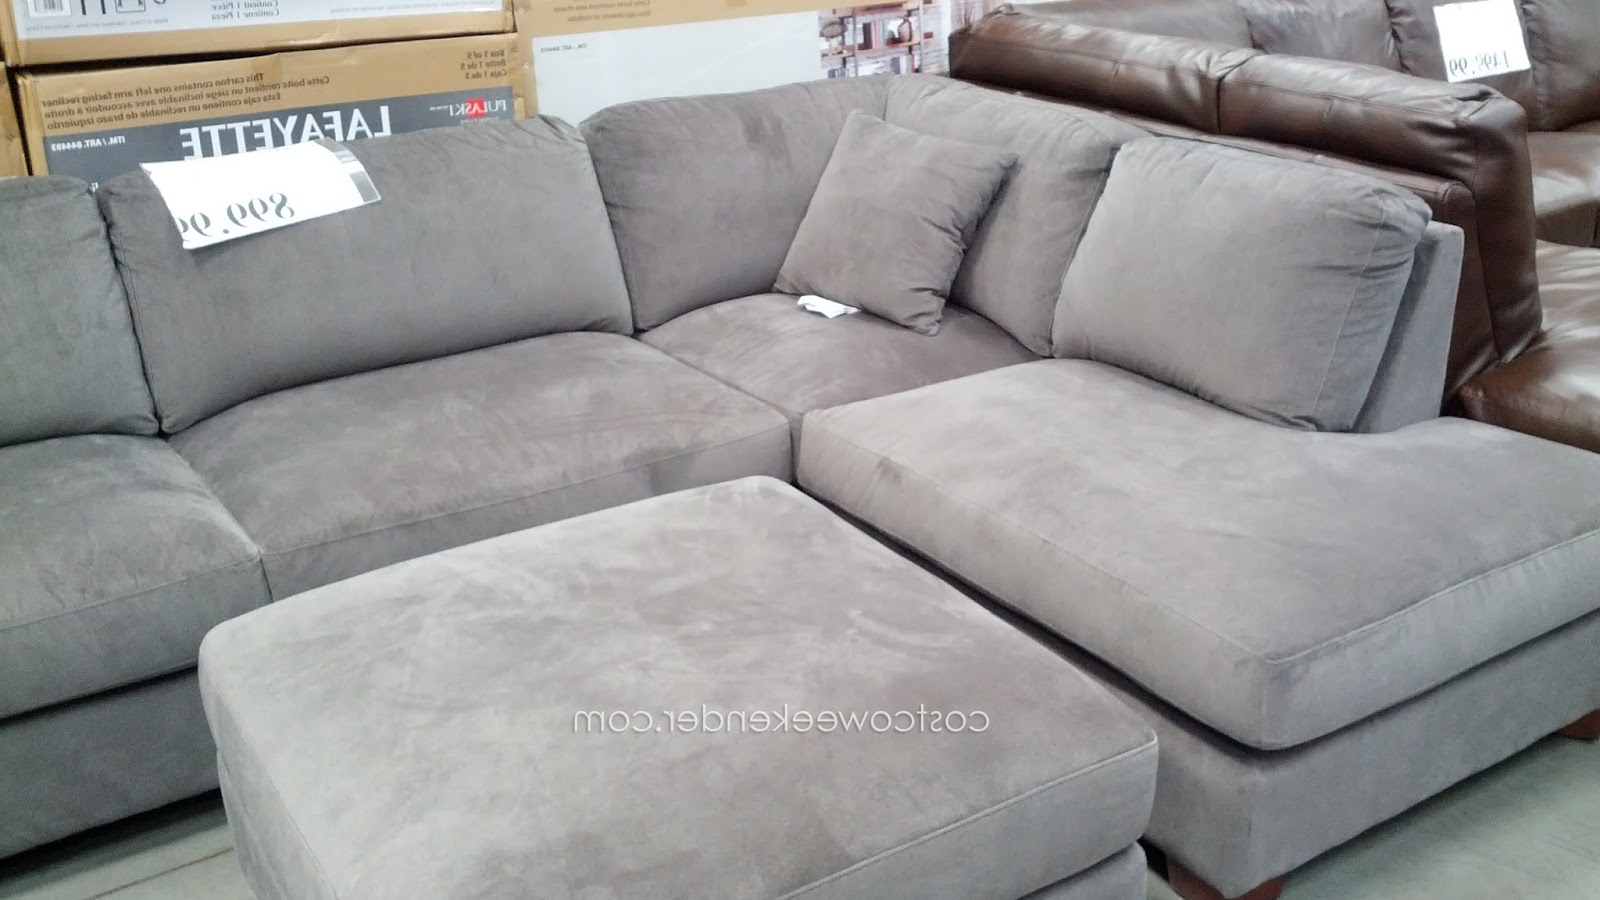 Emerald Home Furnishings Bianca 3 Piece Sectional Set Inside Preferred Jimmie 3 Piece Sectionals Seating Group With Cushions (View 6 of 25)